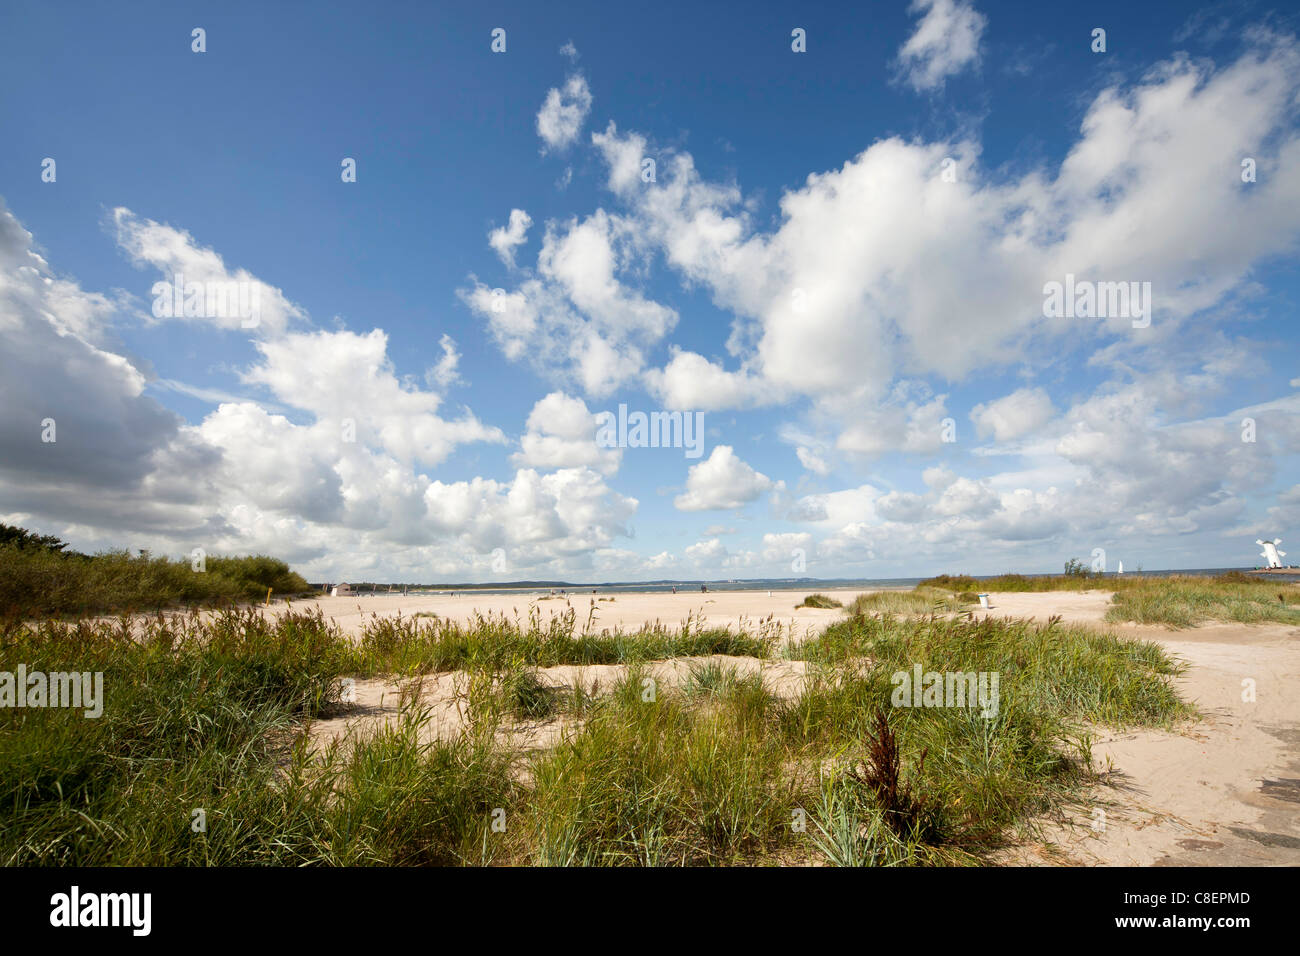 the long beach of the polish seaside resort Swinoujscie, Uznam Island, Poland, Europe Stock Photo